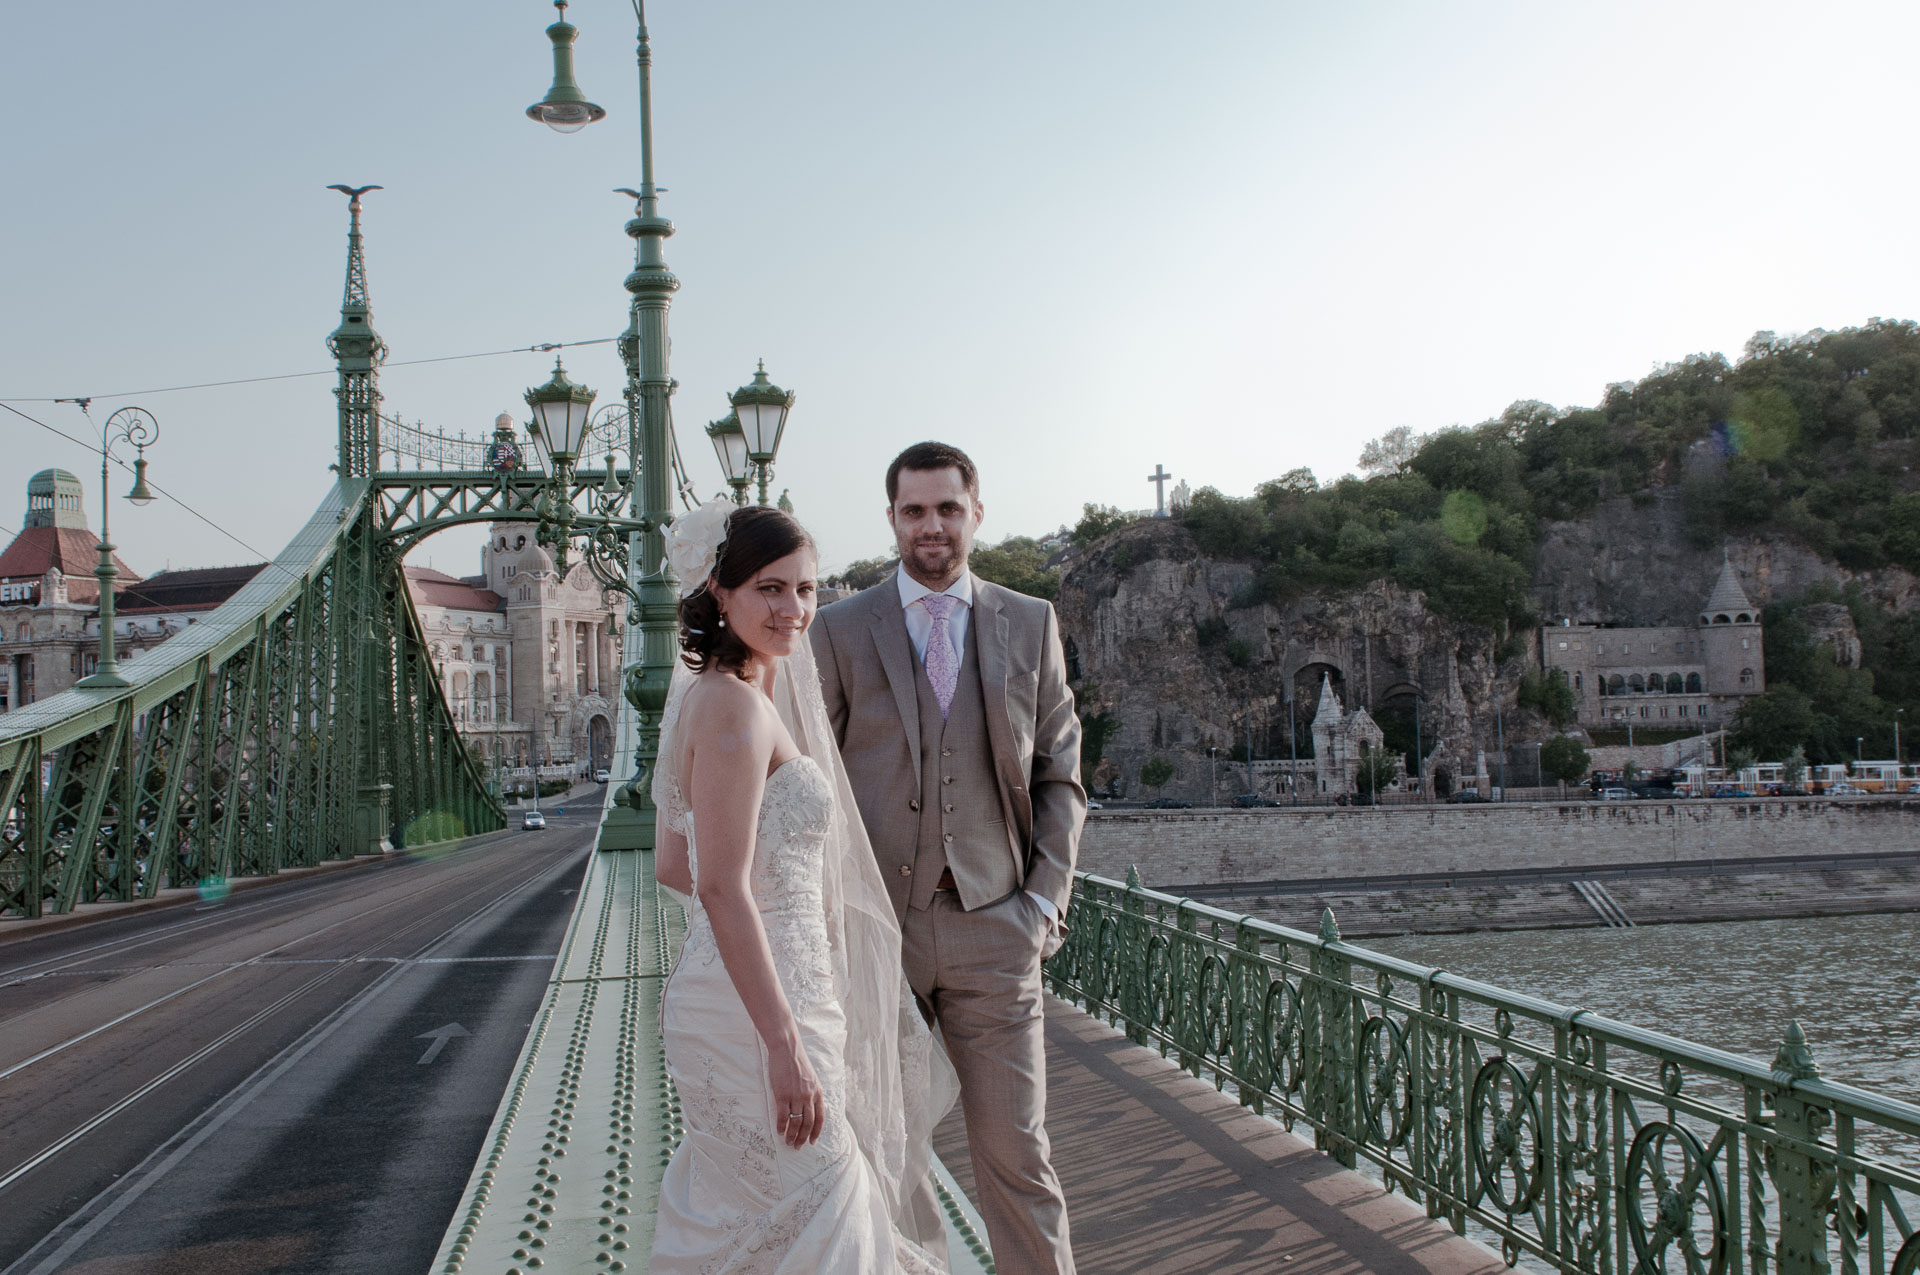 Adventurous couple eloping into Budapest, posing on a bridge after spa visit